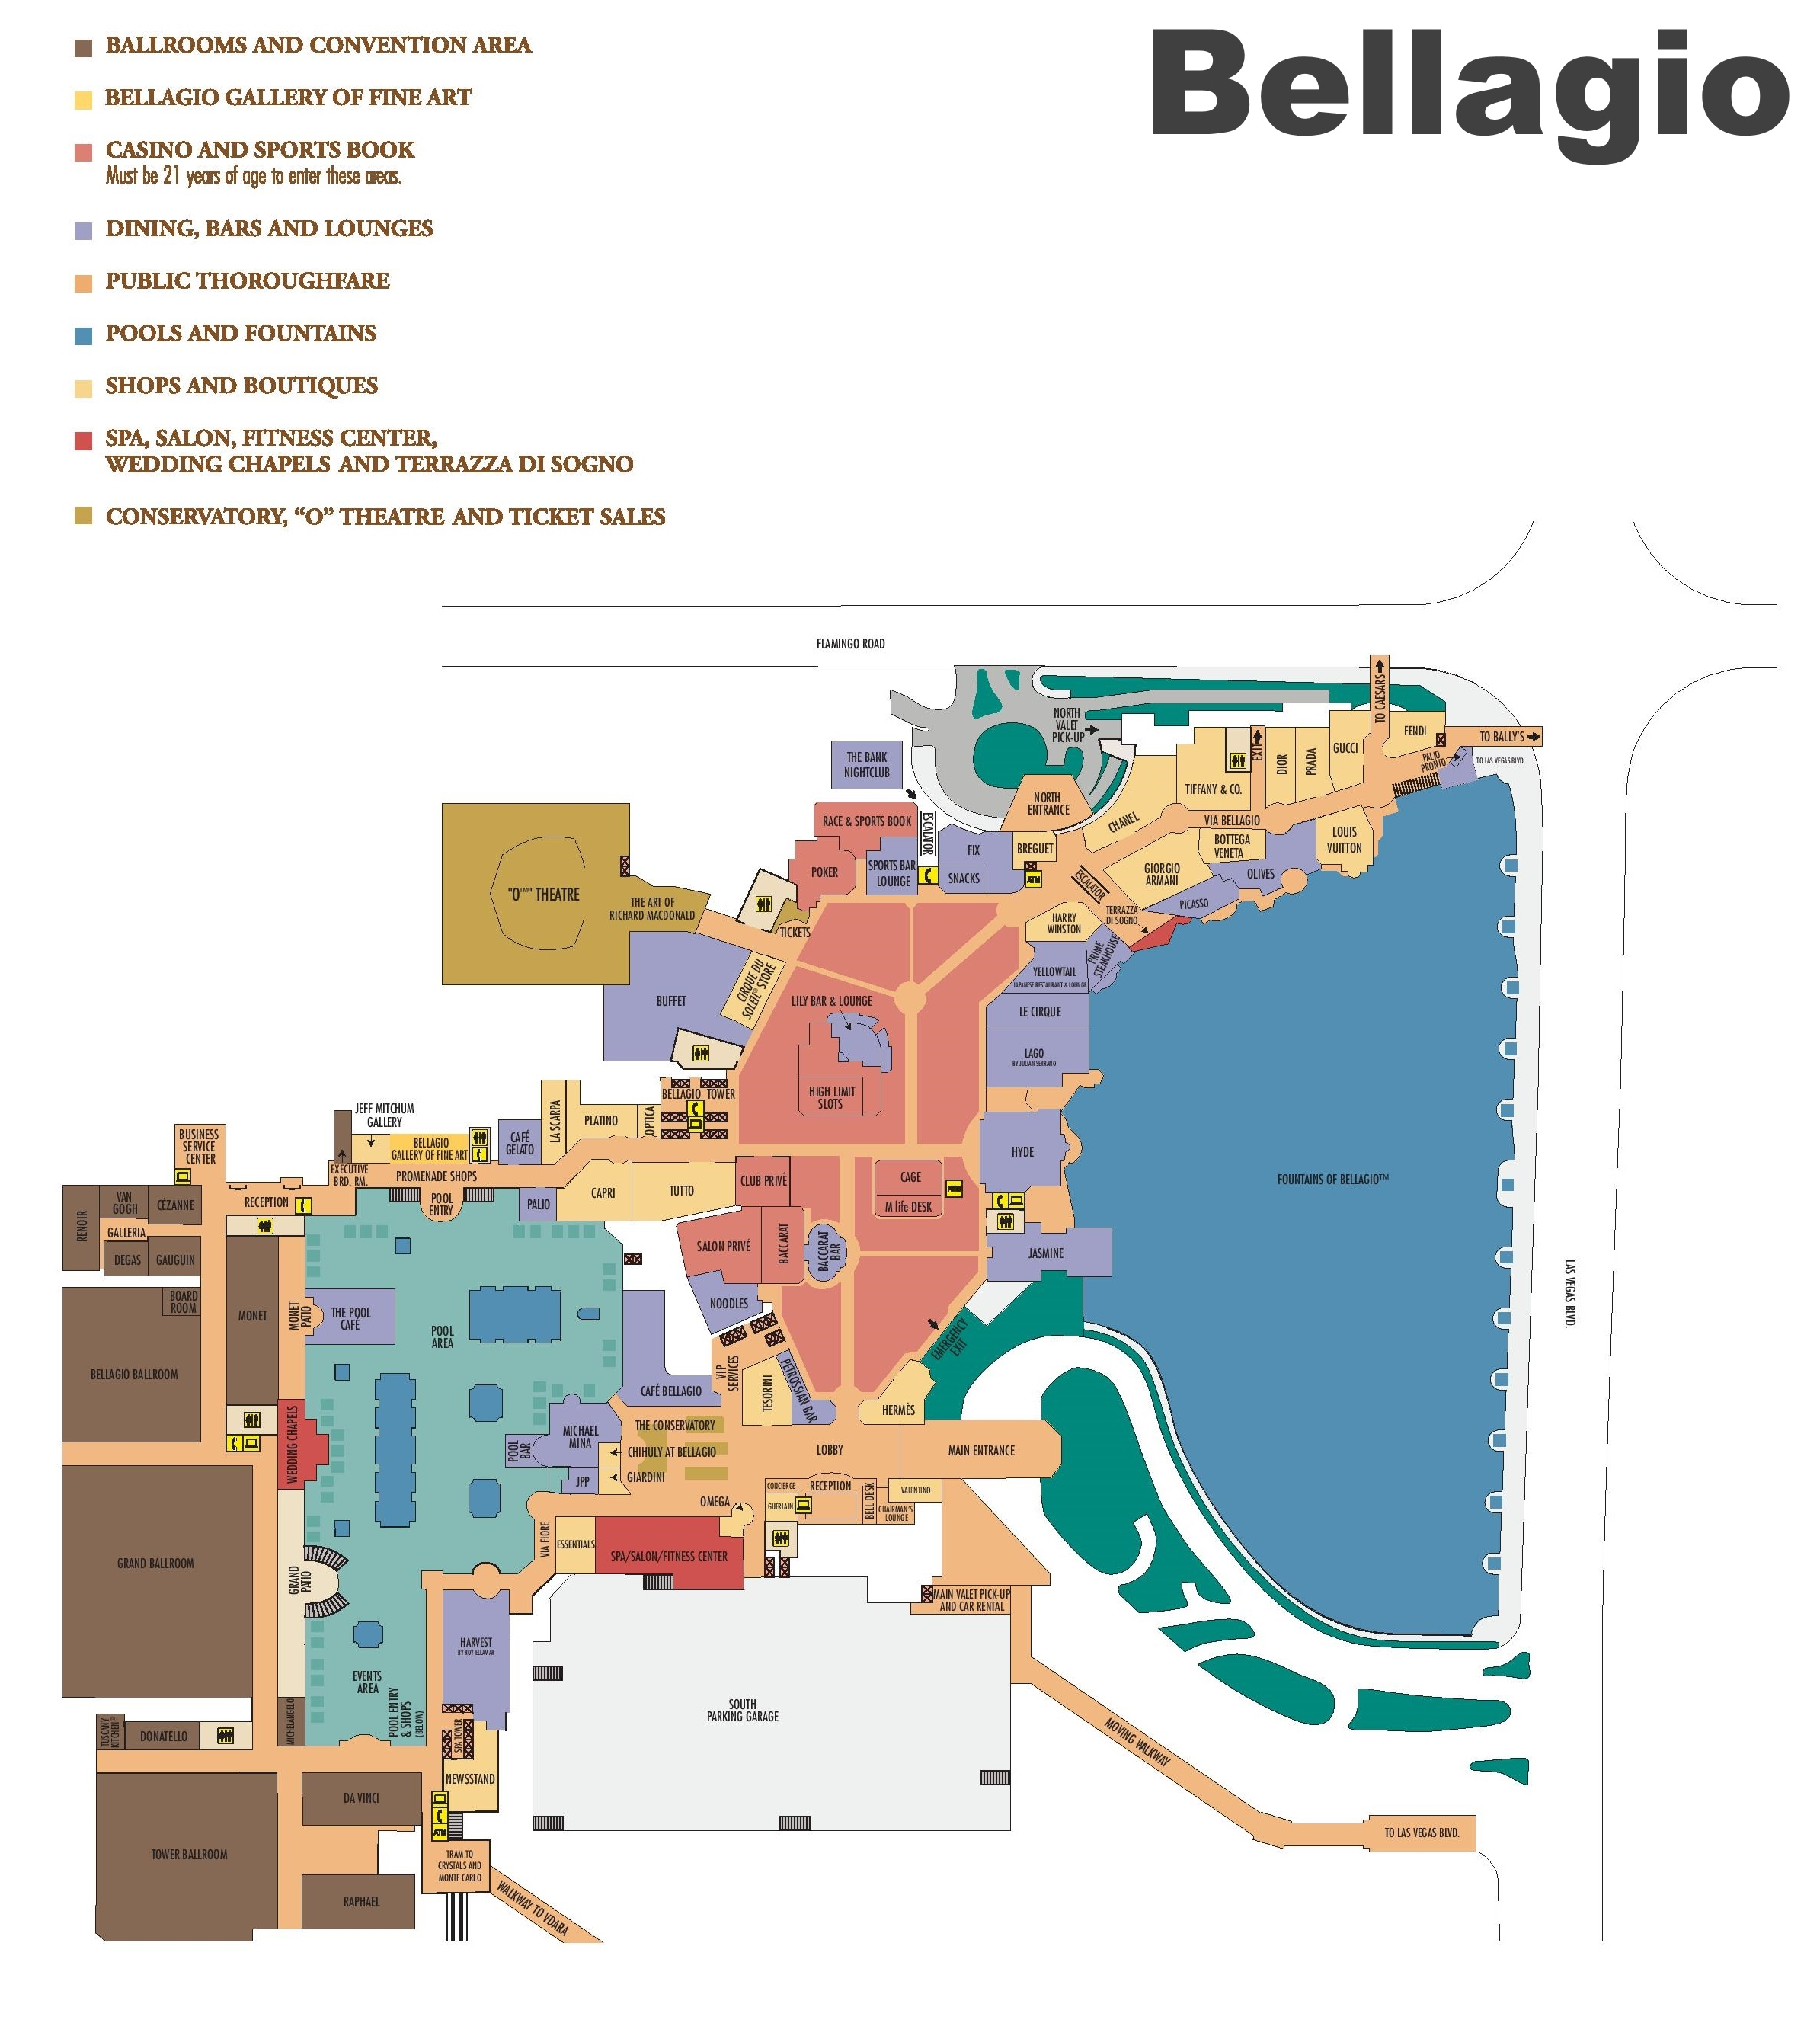 Las Vegas Bellagio Hotel Map - Las vegas map of hotels